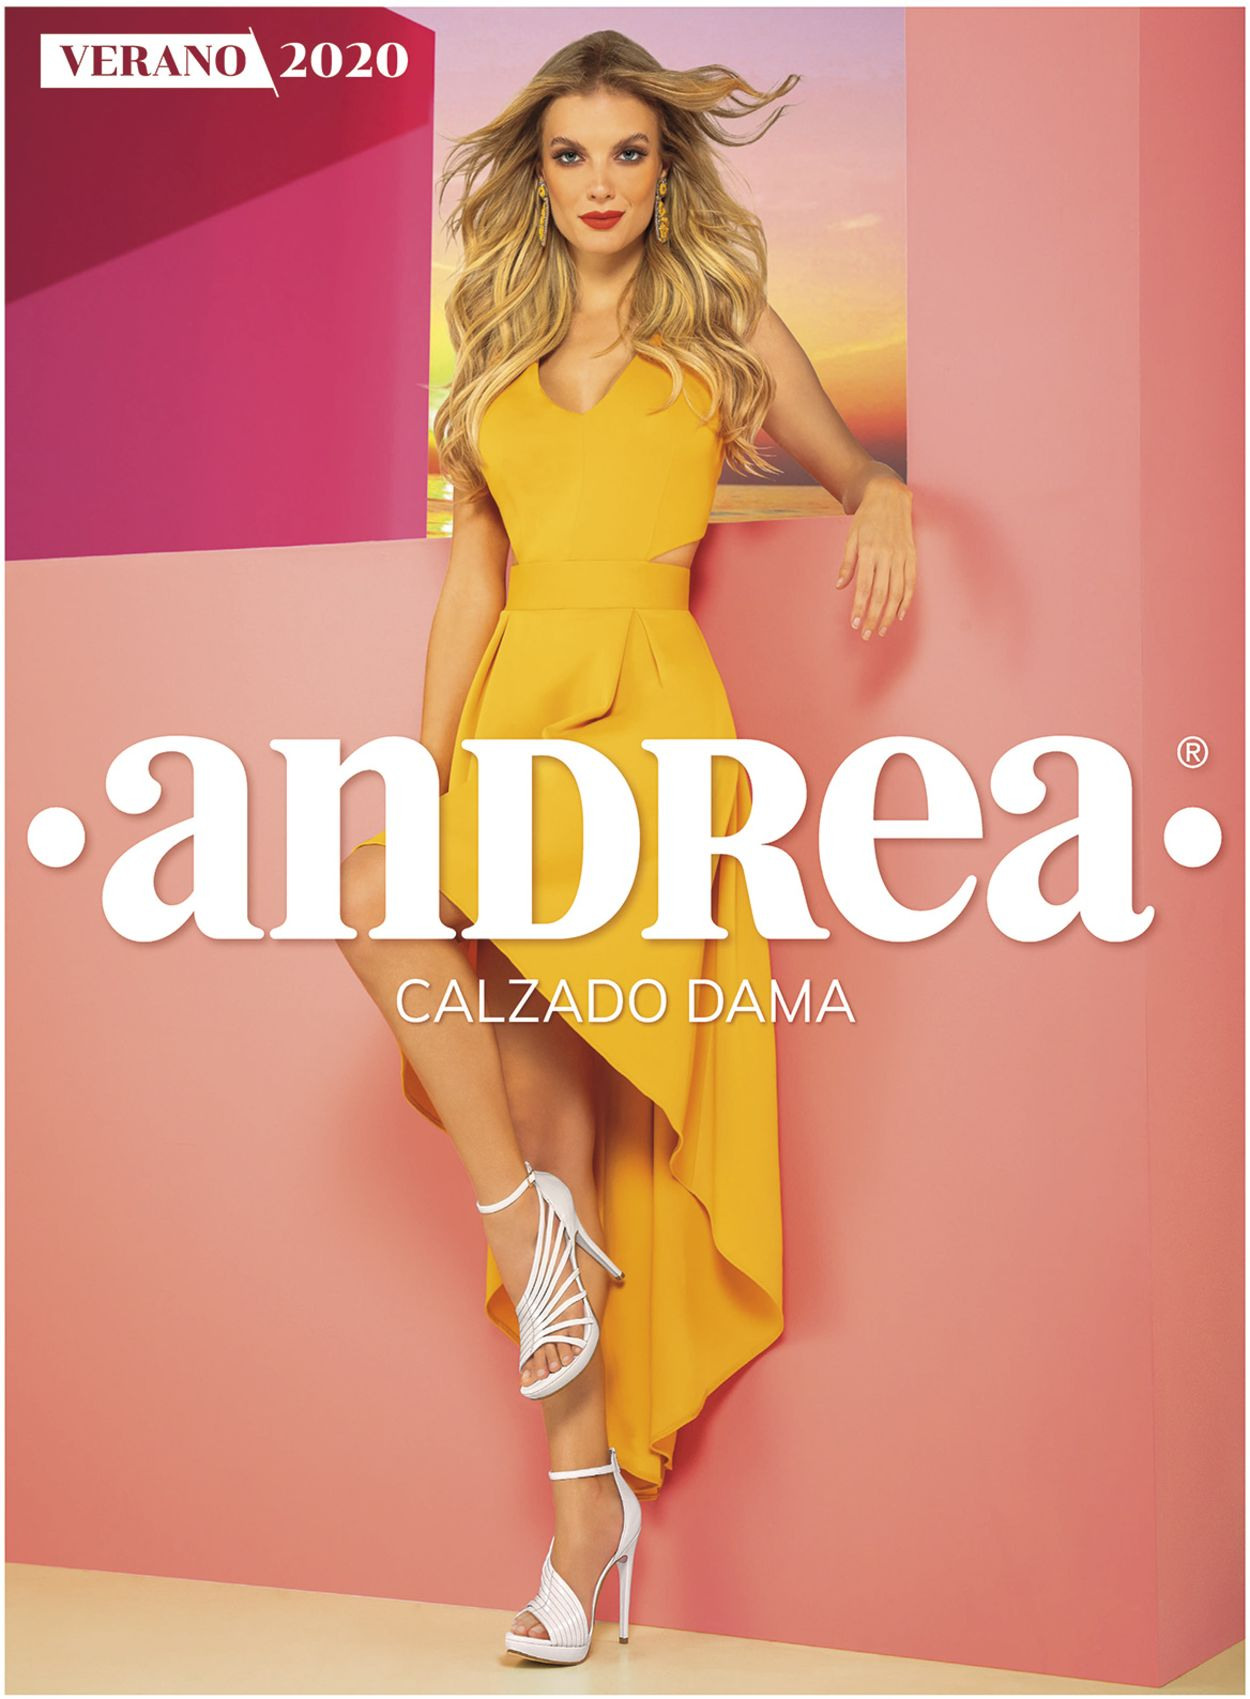 Andrea Folleto - 25.05-22.08.2020